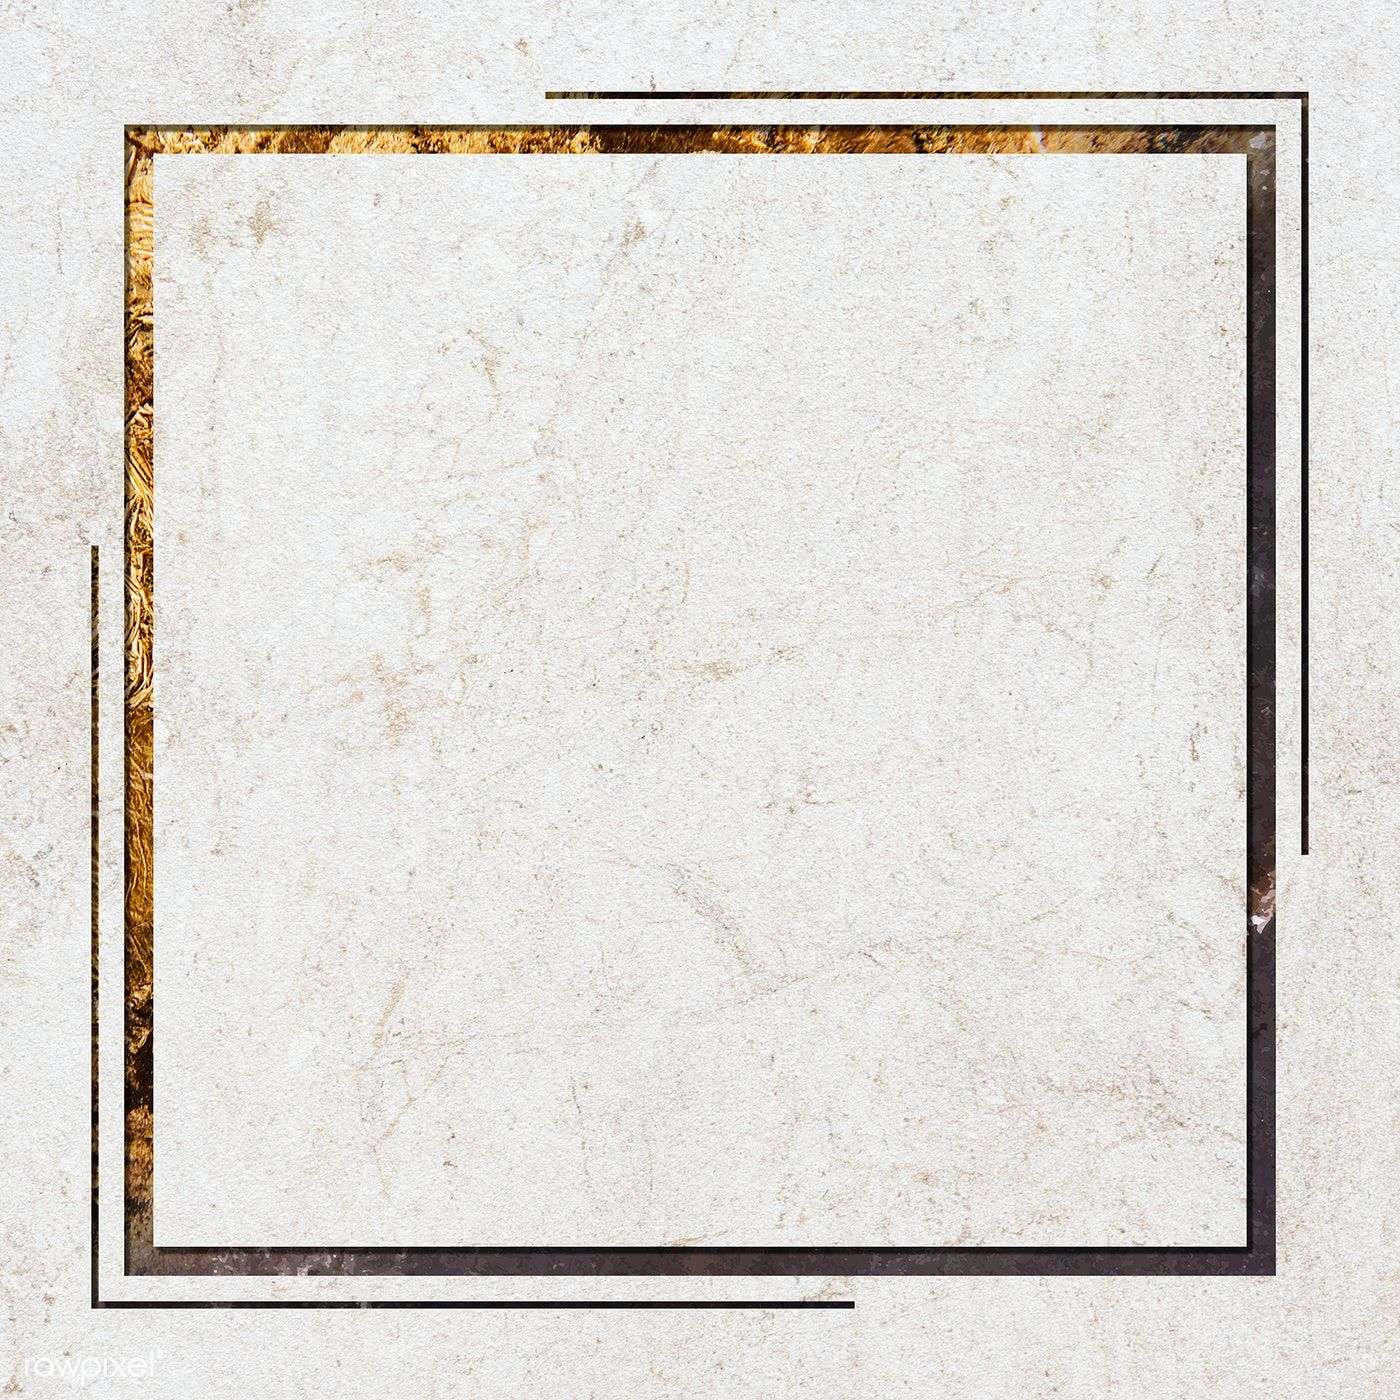 Download free illustration of Square frame on white marble textured